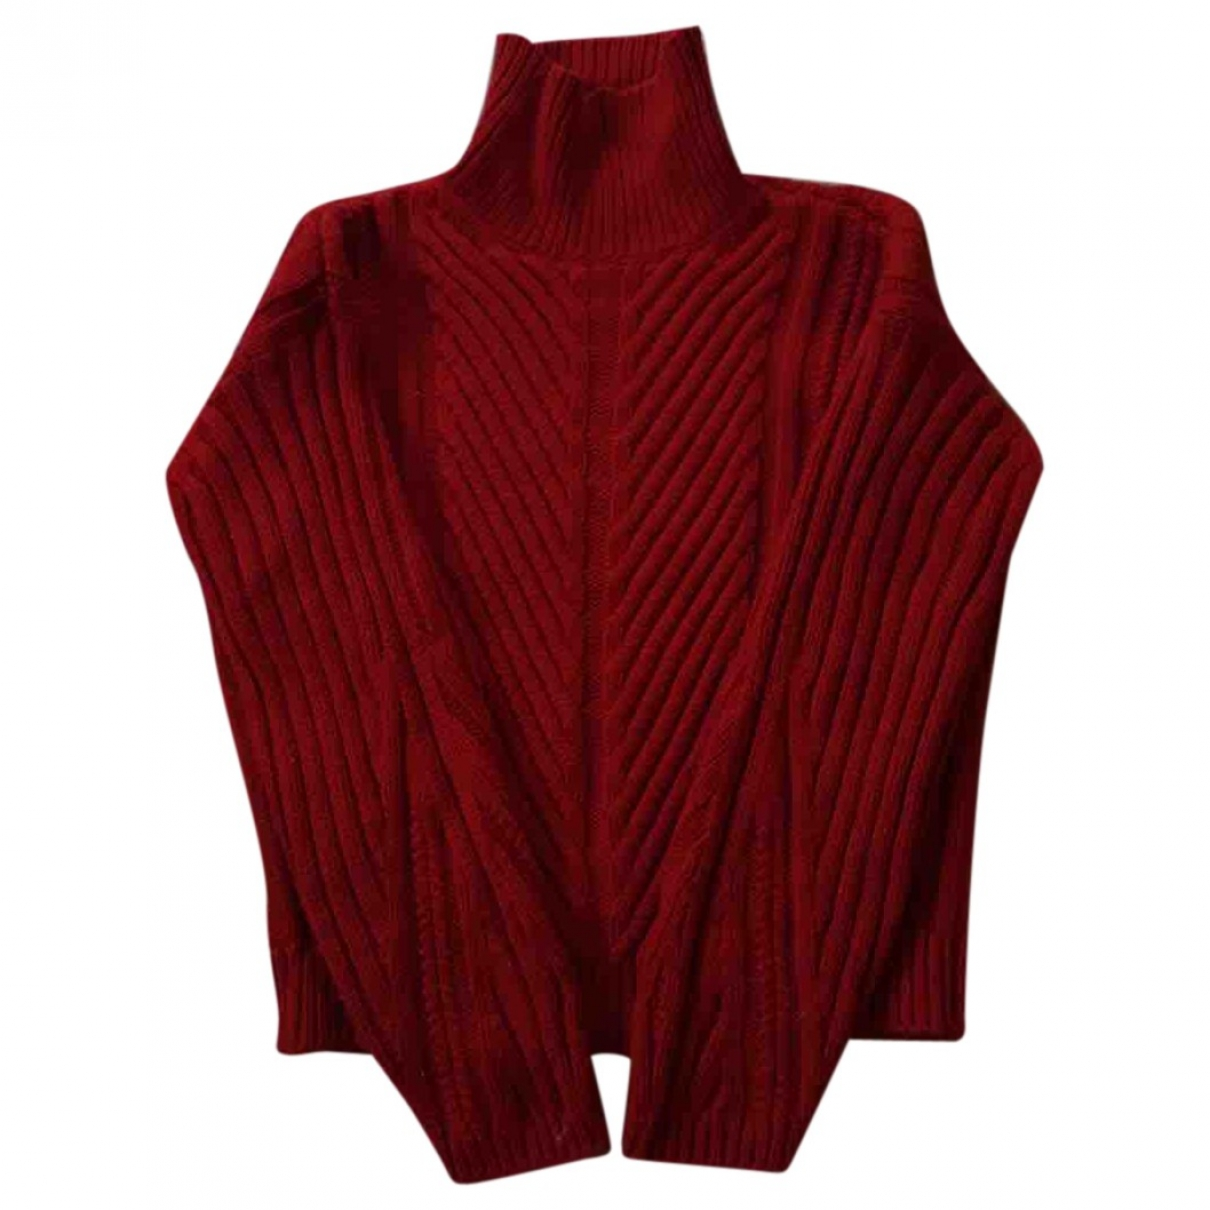 Massimo Dutti \N Red Cotton  top for Women S International